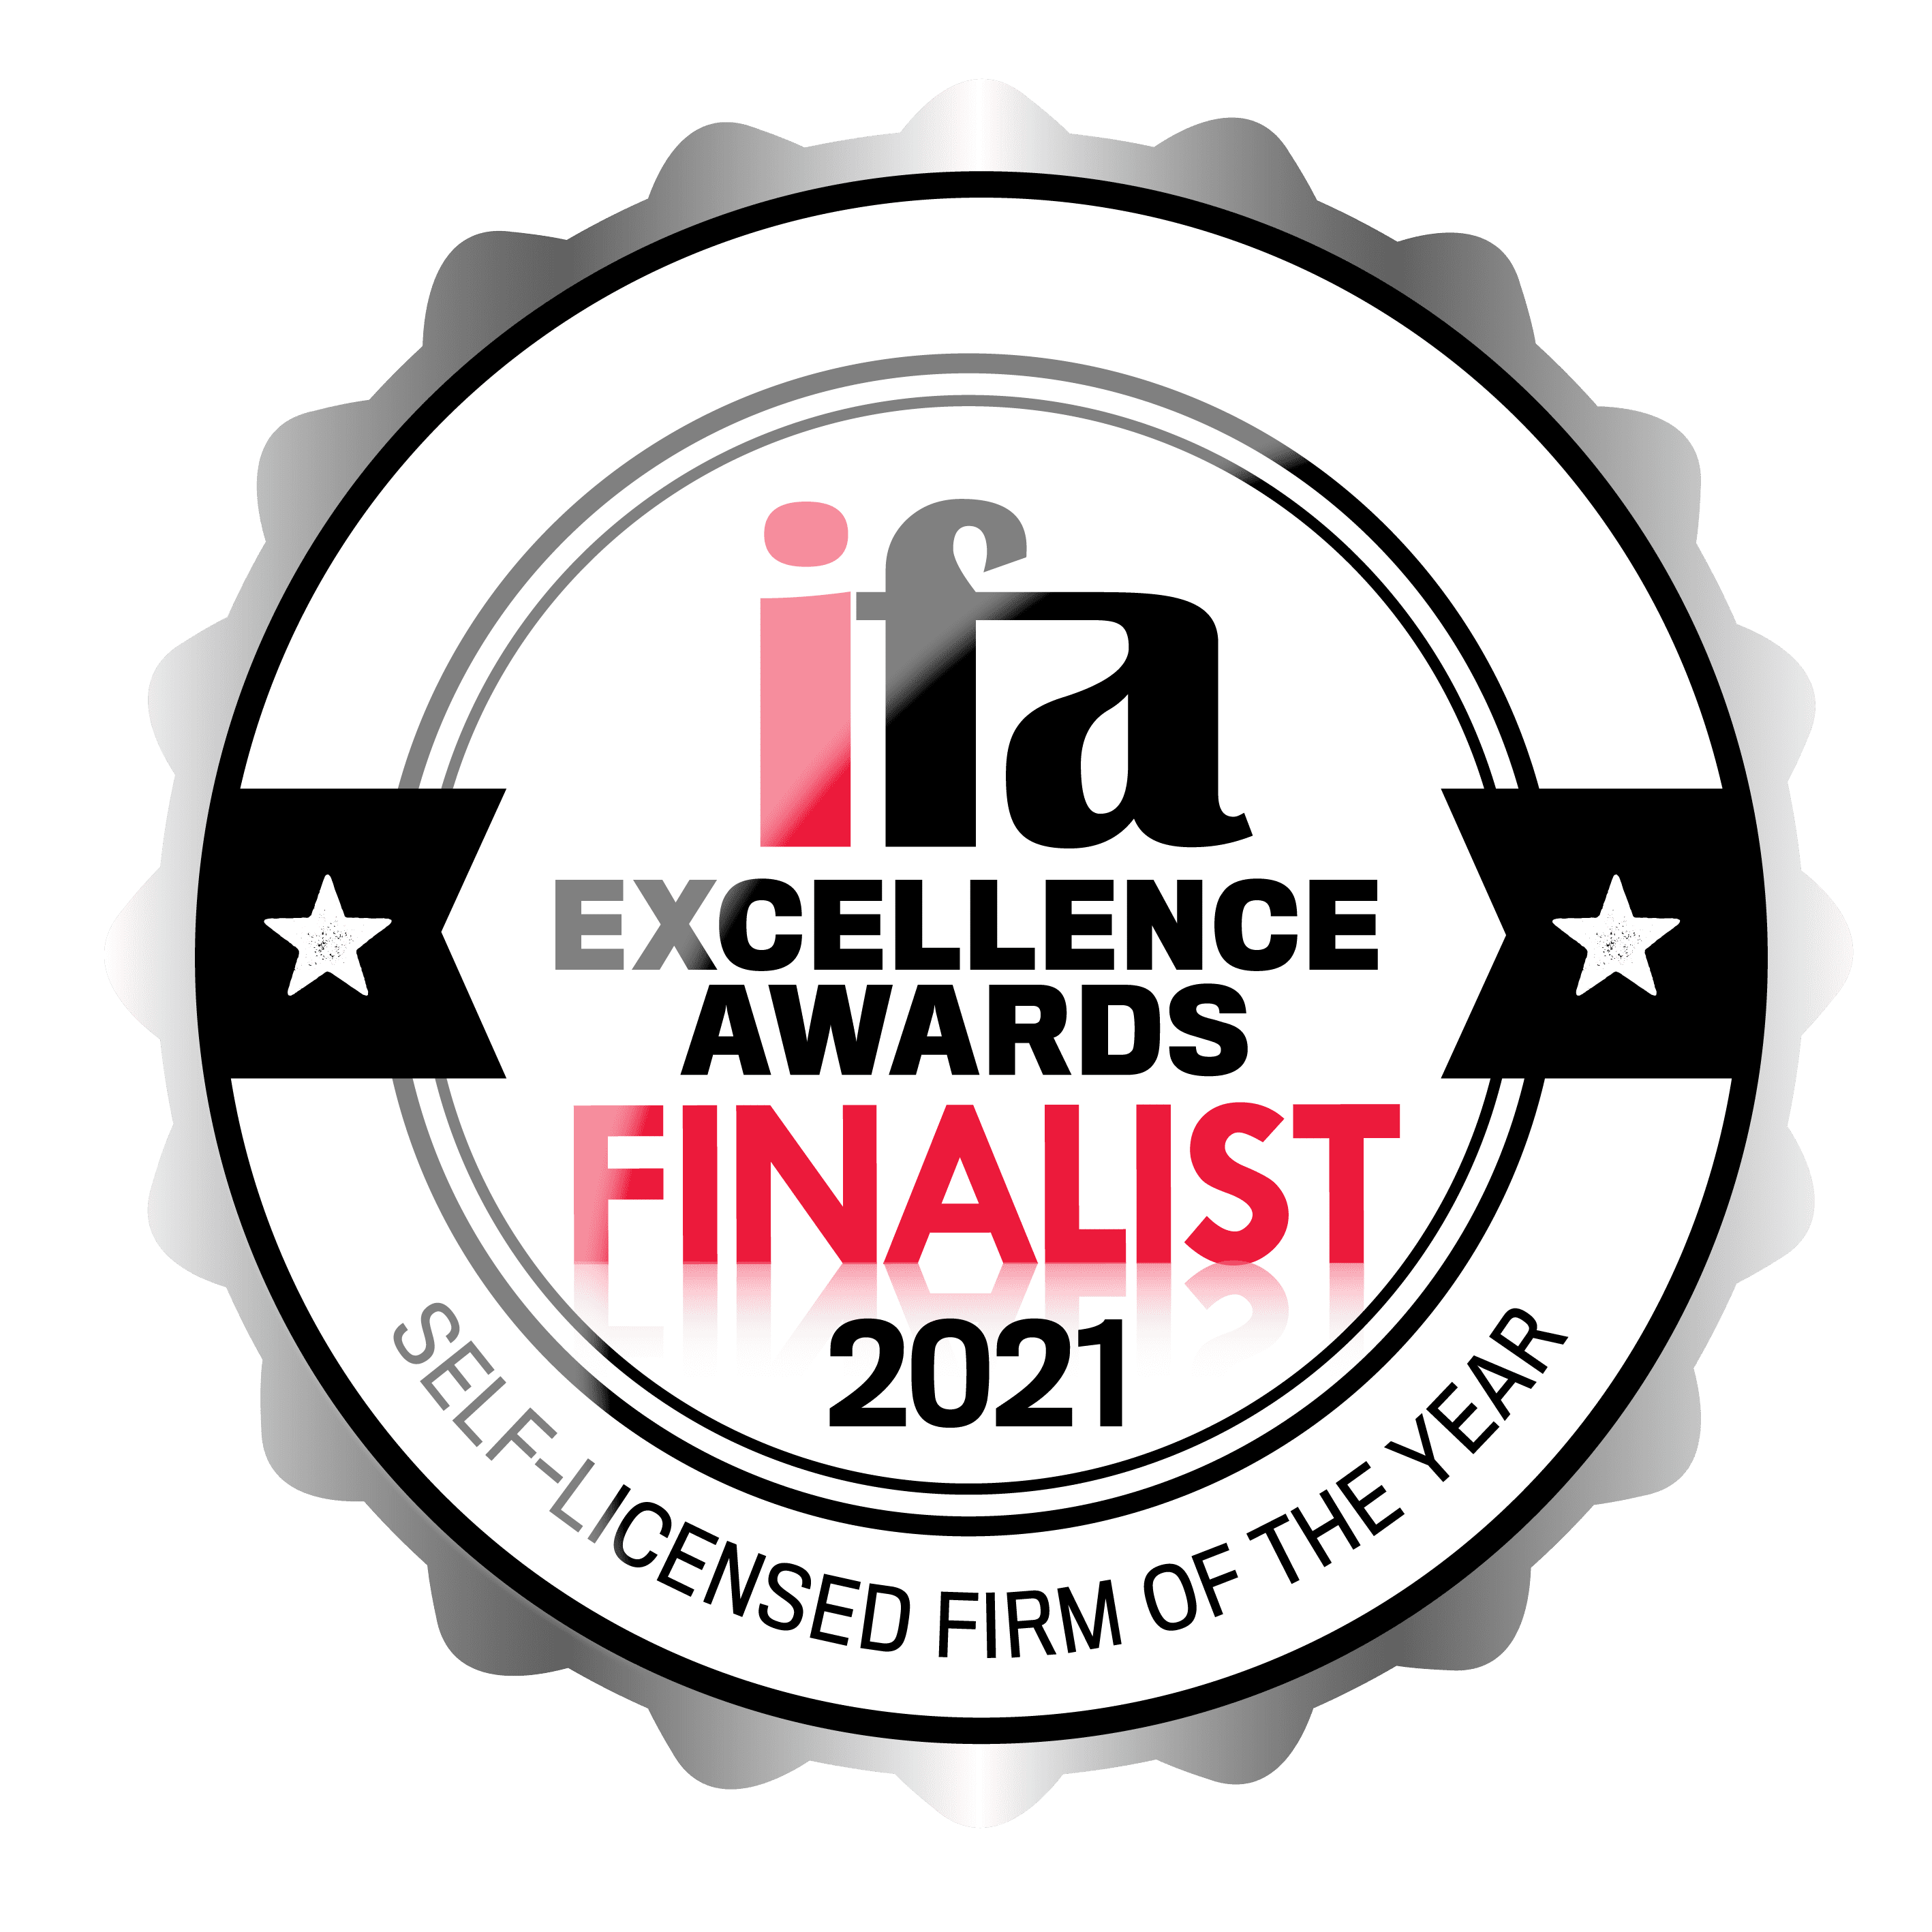 ifa Excellence Awards Finalist - Self-Licensed Firm of the Year 2021